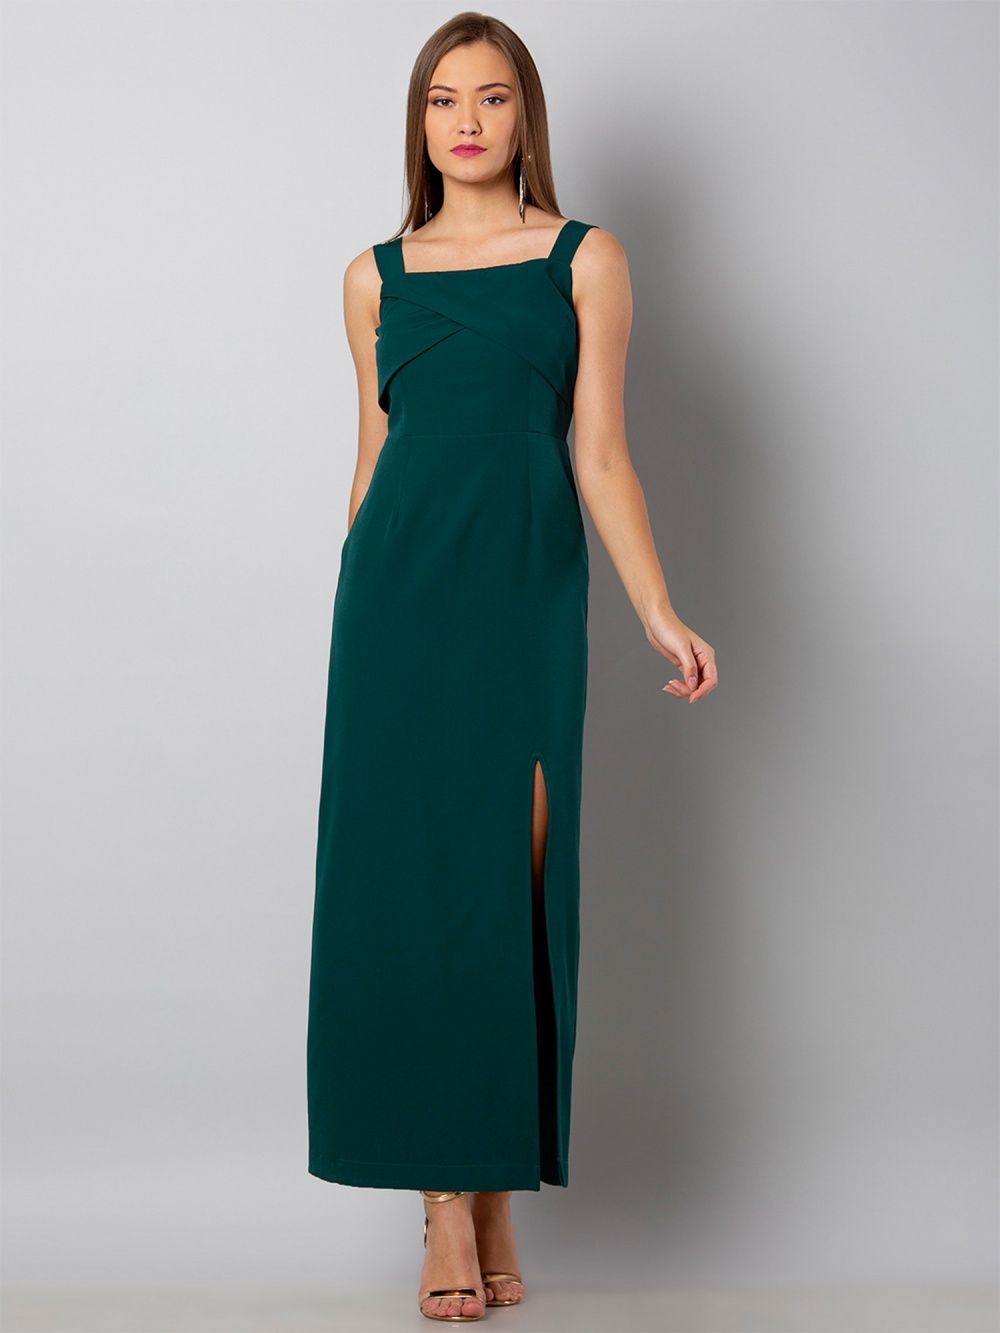 8a1a419154b Faballey Dresses   Buy Faballey Green Overlap Yoke Maxi Dress Online ...